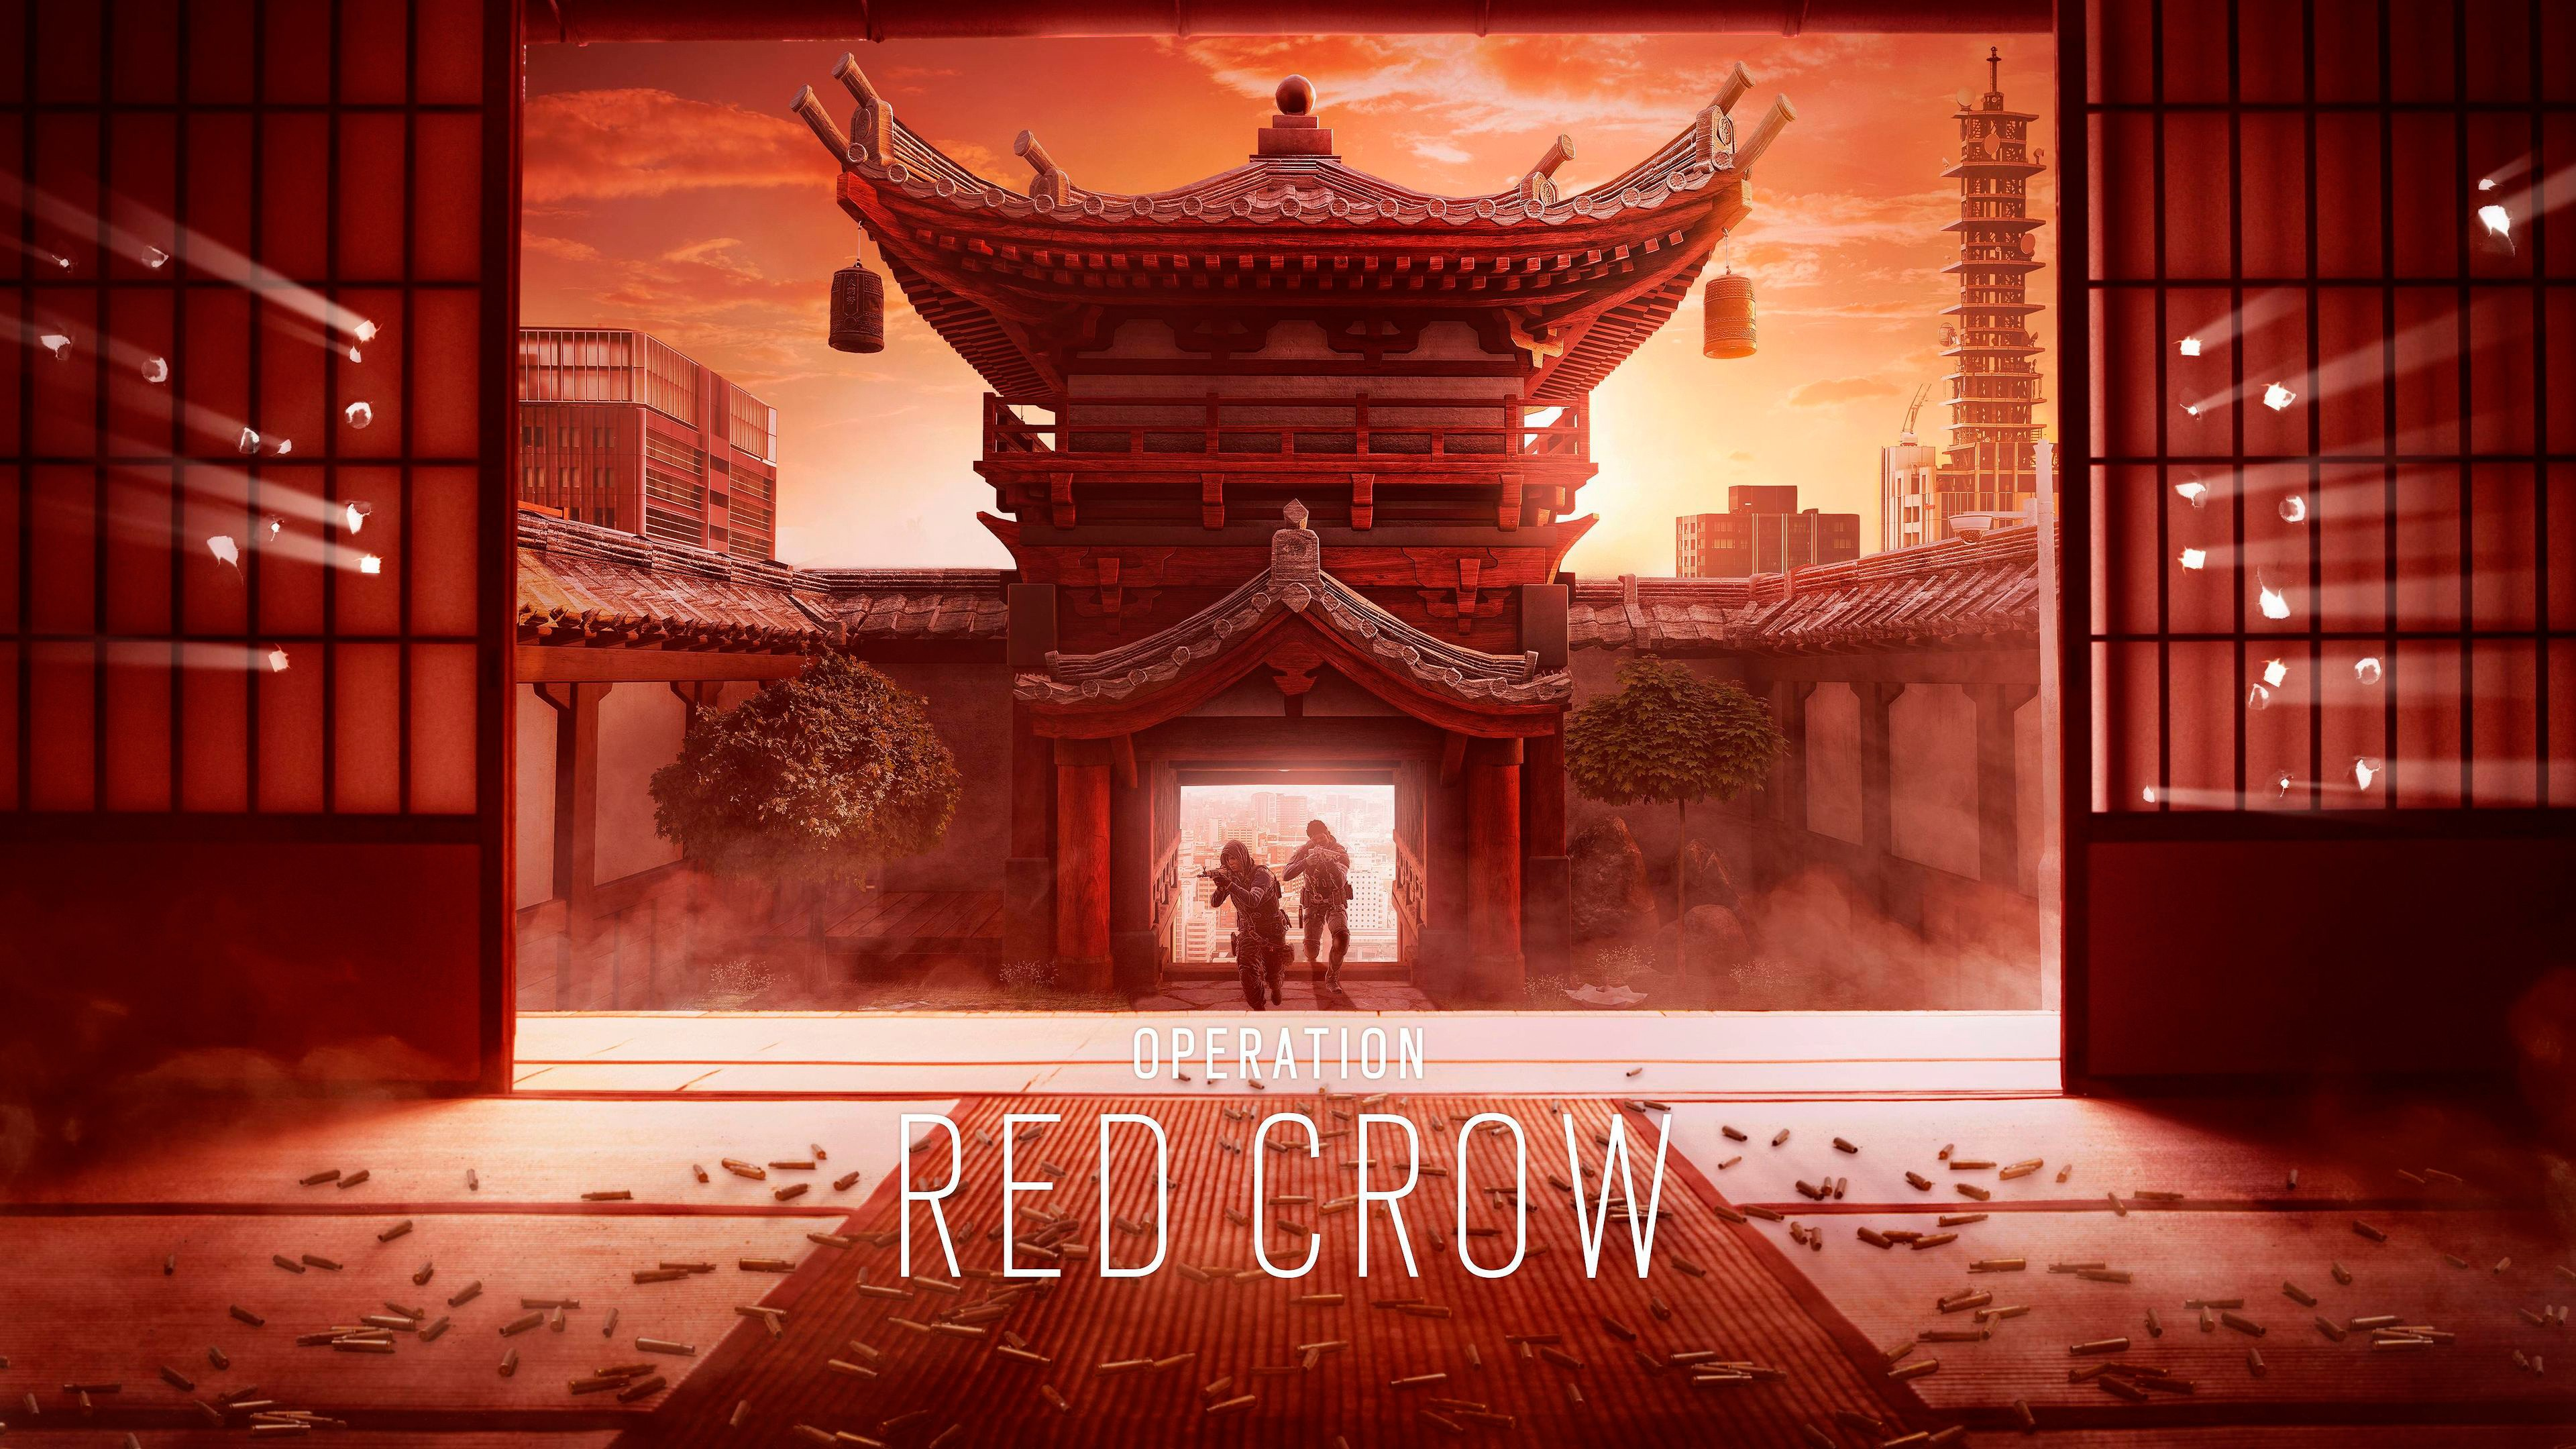 operation red crow wallpaper 4k background